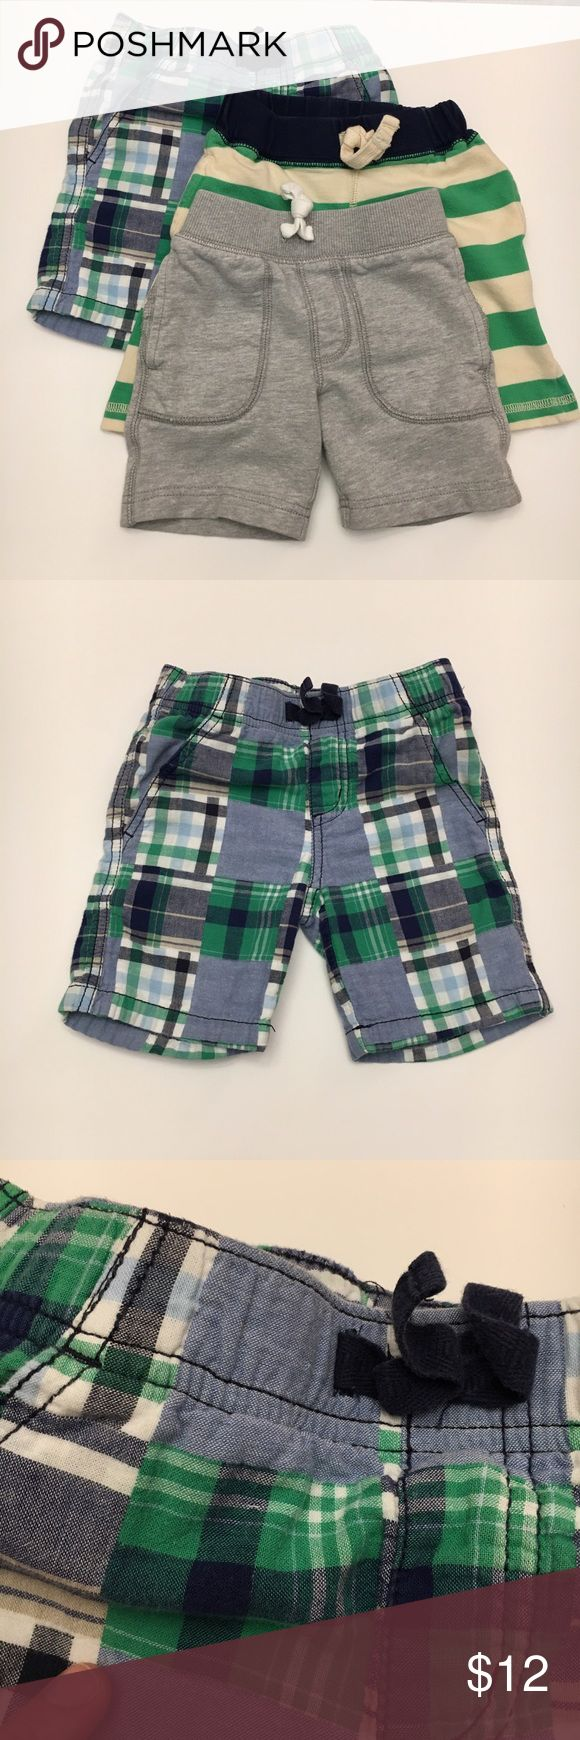 (3) Bundle Gymboree and Carter's Boys Shorts Triple bundle of shorts in GUC. The gray shorts are Carter's, and the remaining two pairs are Gymboree. Pair these shorts with just about any t-shirt and you have an outfit your cool little guy will love. Gymboree Bottoms Shorts